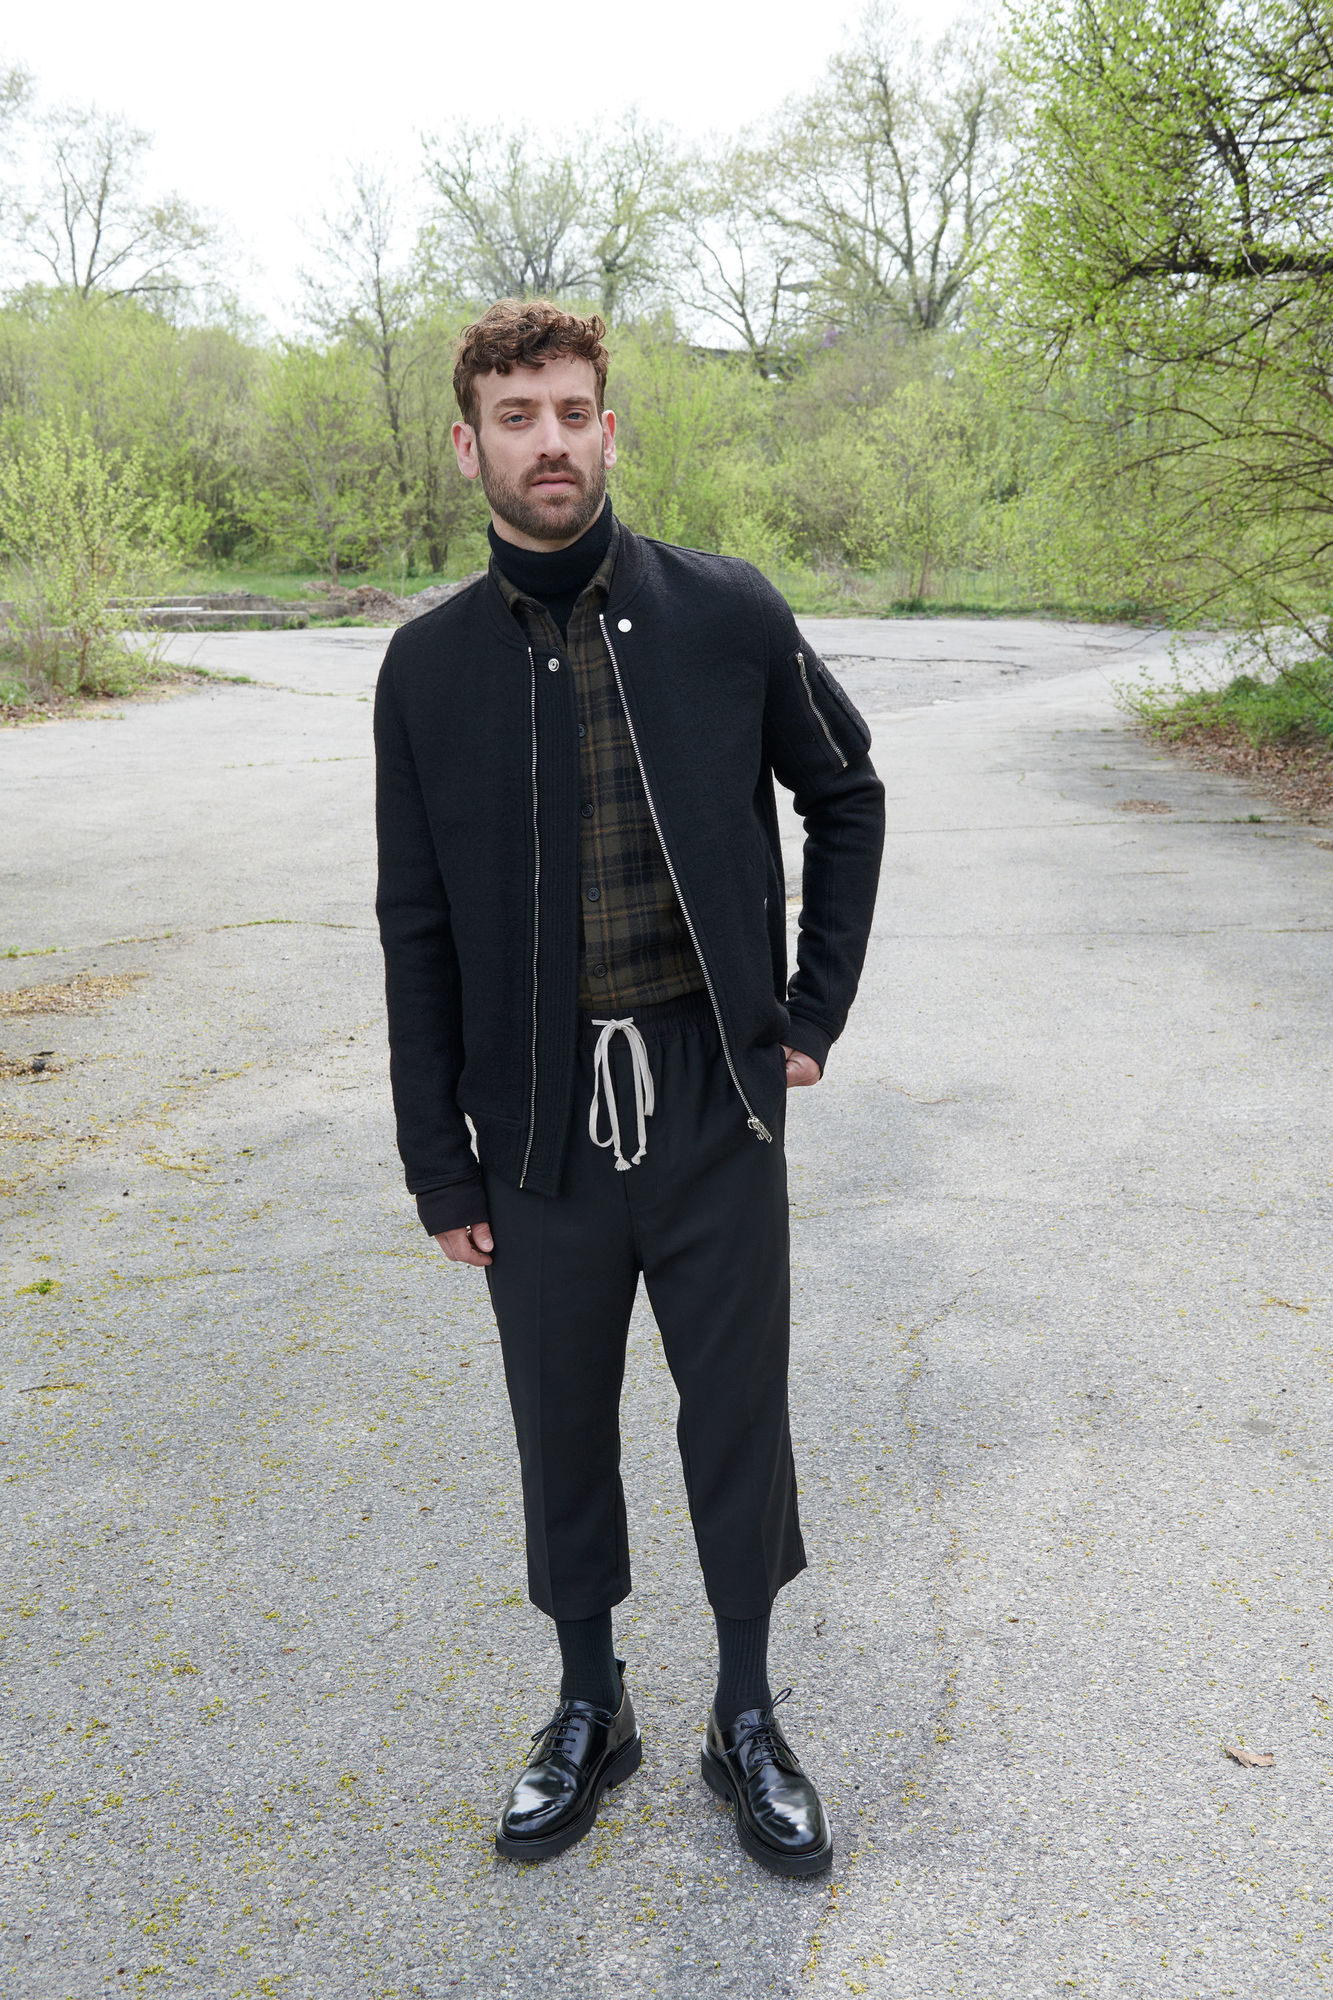 Nordstrom Fall 2018 Men's Campaign by Peter Sutherland c/o GIANT ARTISTS